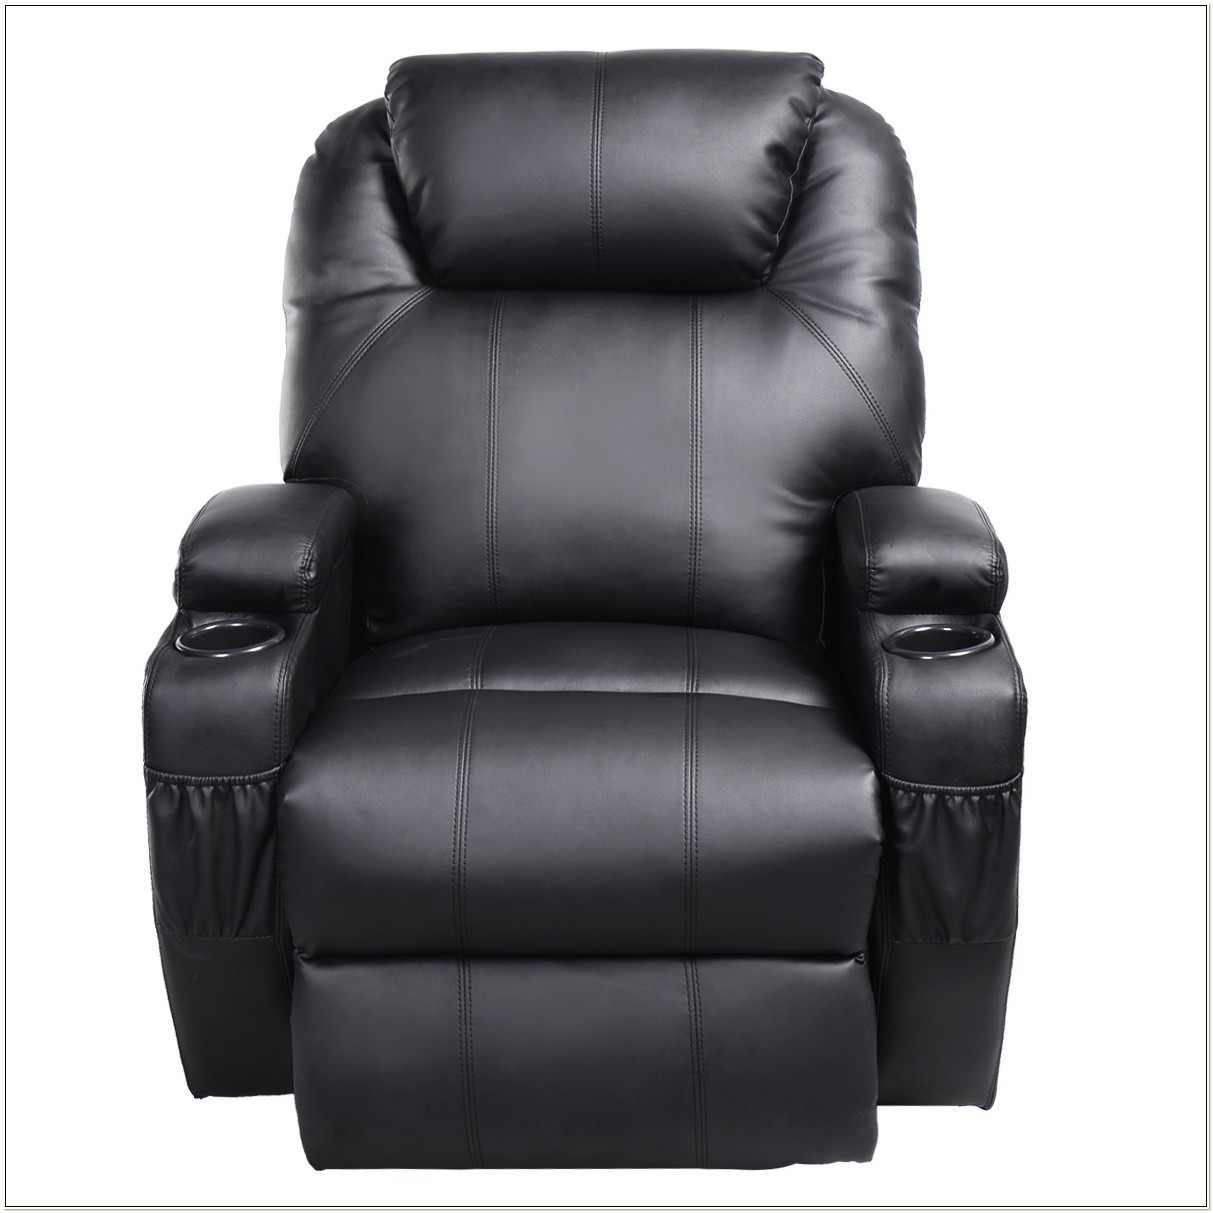 Second Hand Riser Recliner Chairs Uk